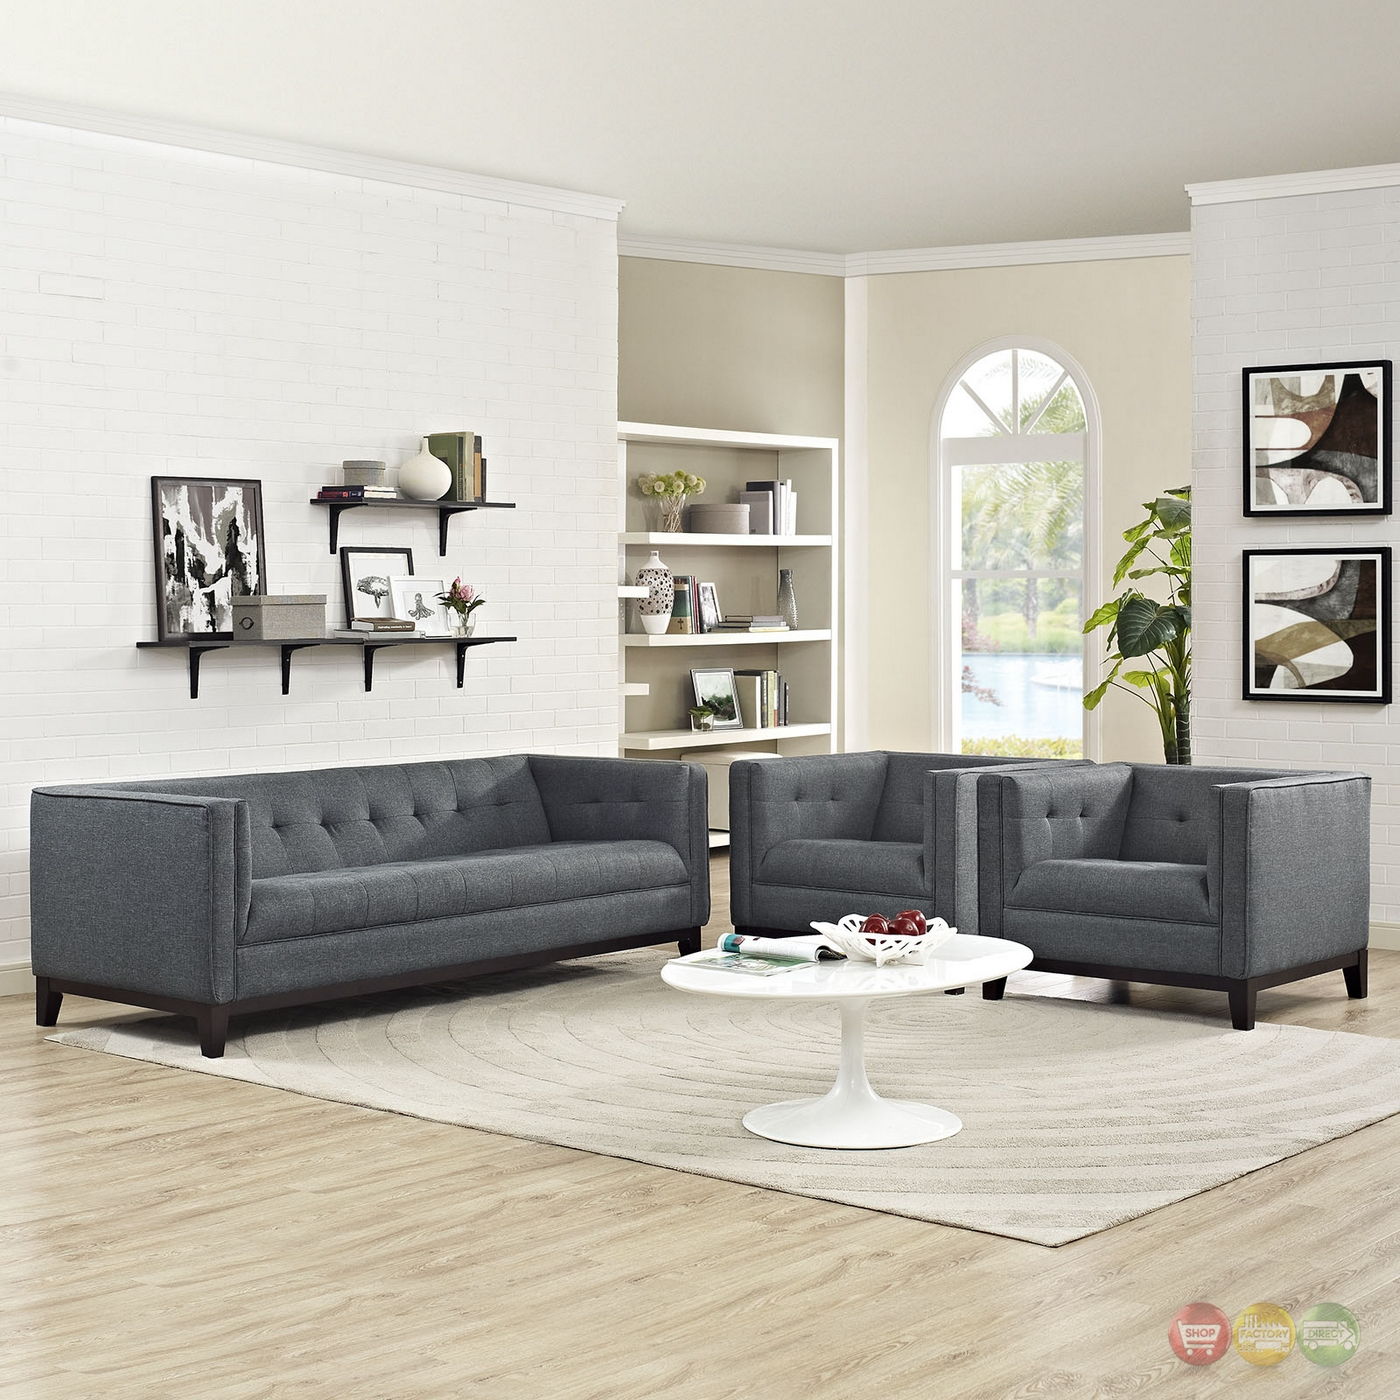 Serve modern 3 pc upholstered sofa armchairs living room set gray - Modern living room furniture set ...